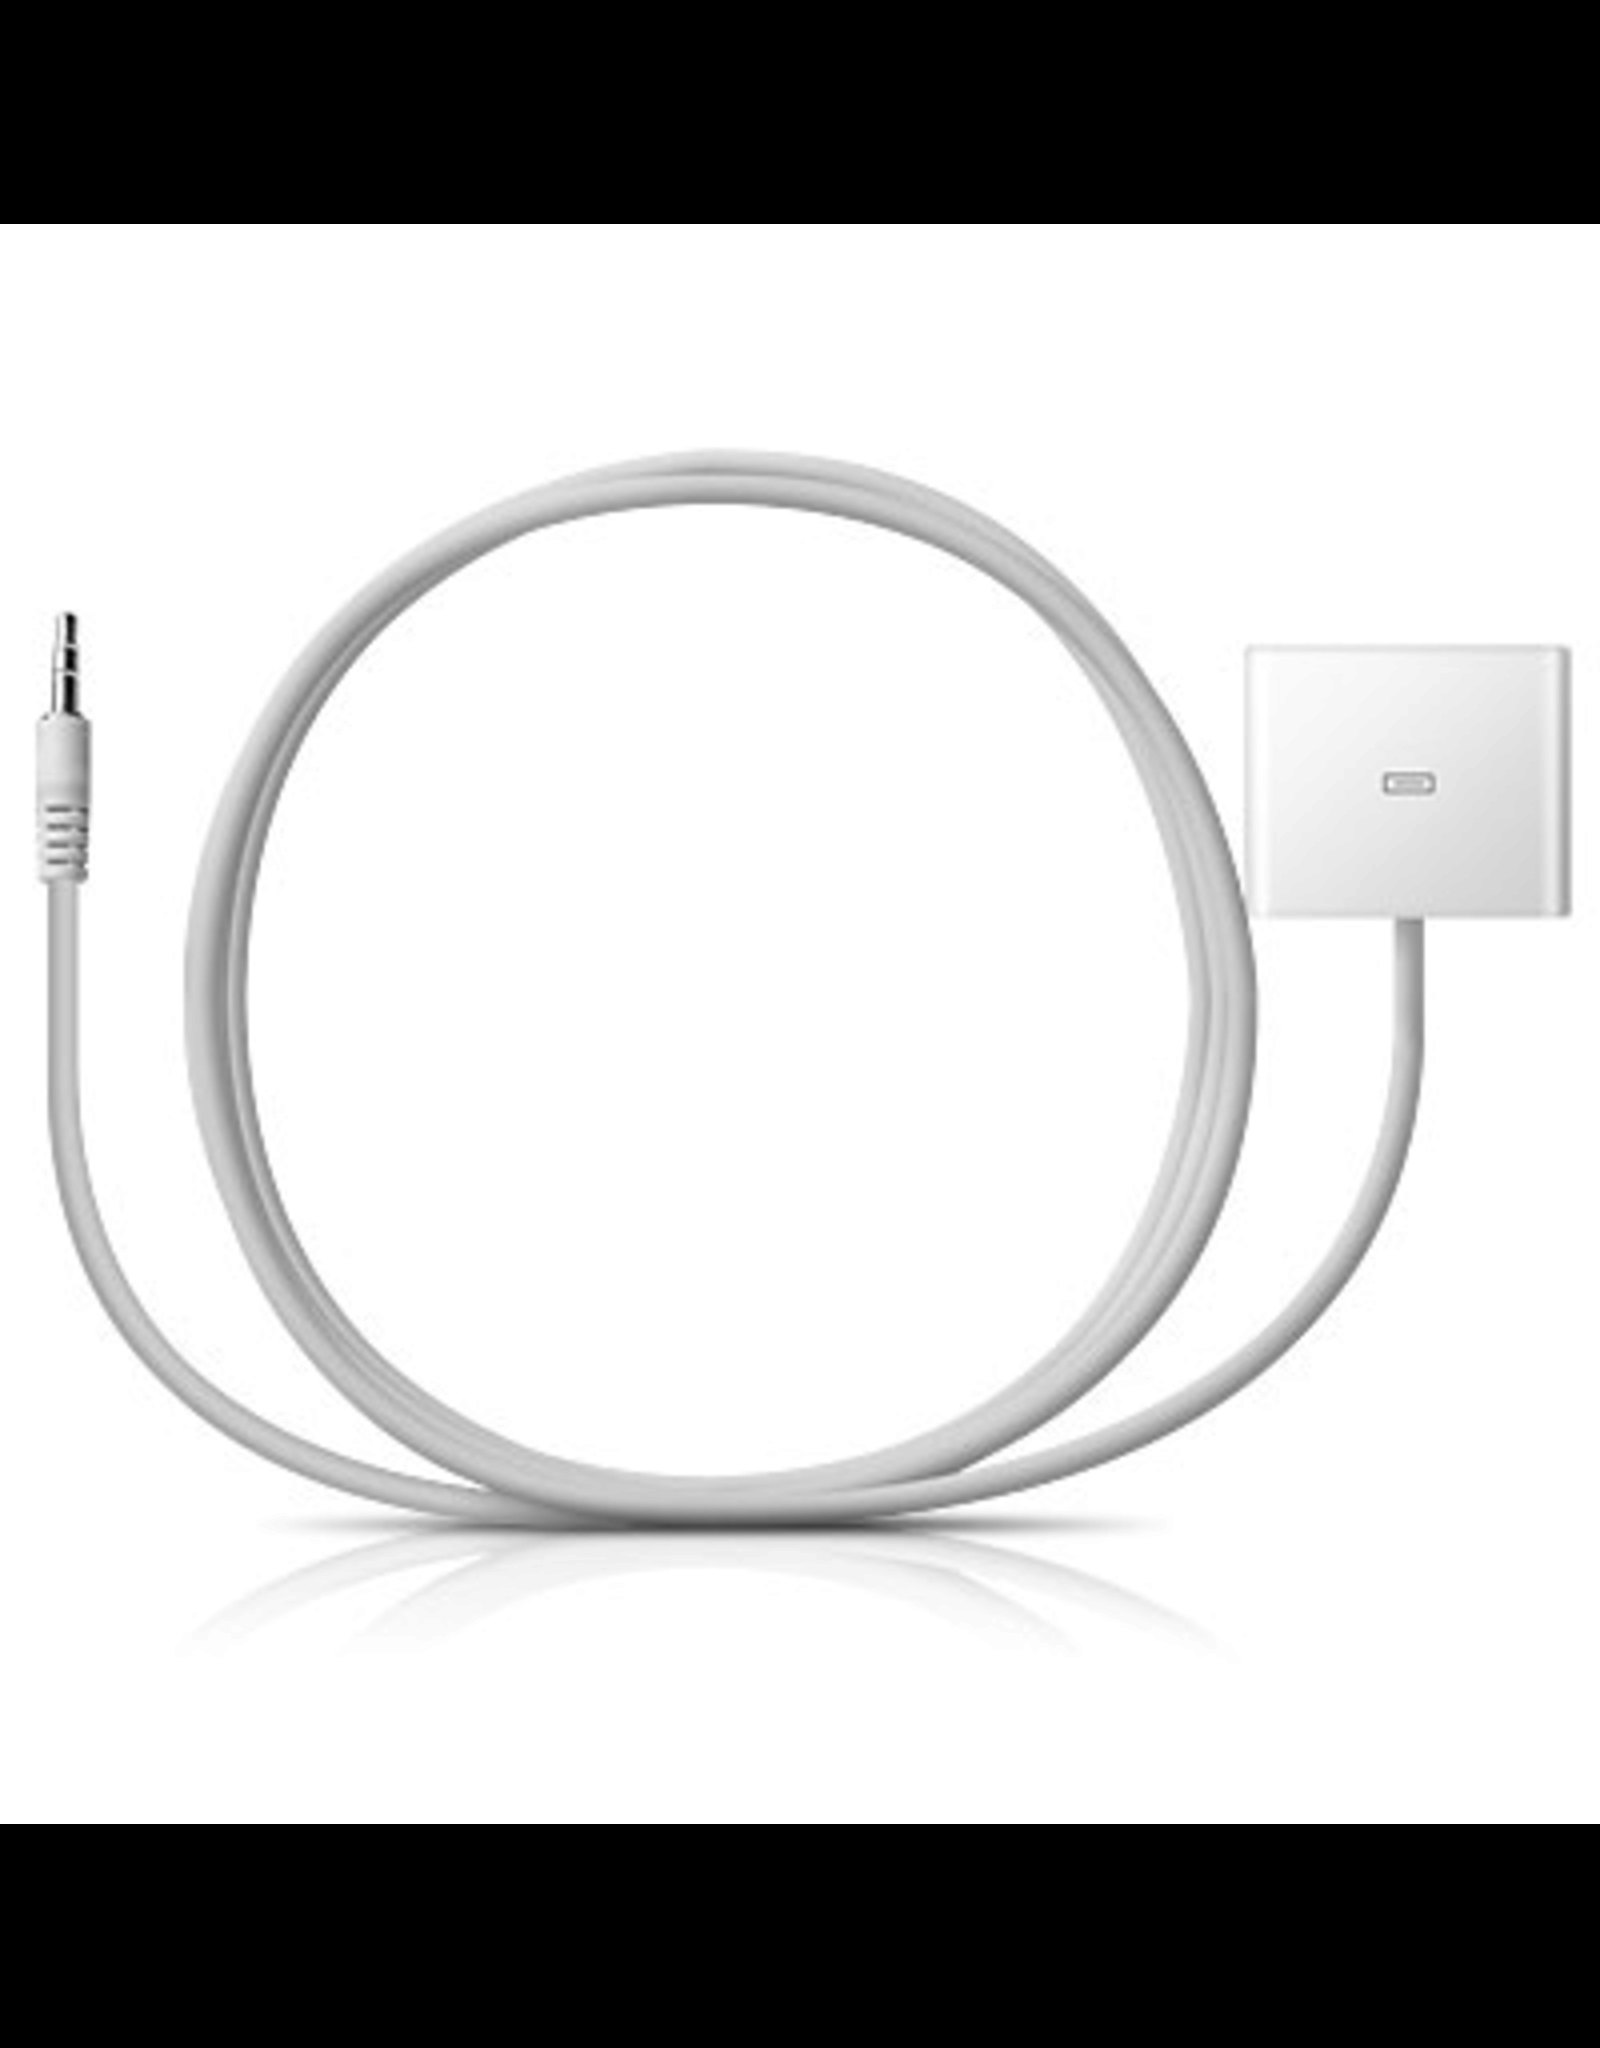 Radtech Radtech - ProCable DockAdapt 3.5mm to 30-pin for iPod Shuffle and other 3.5mm audio devices - White